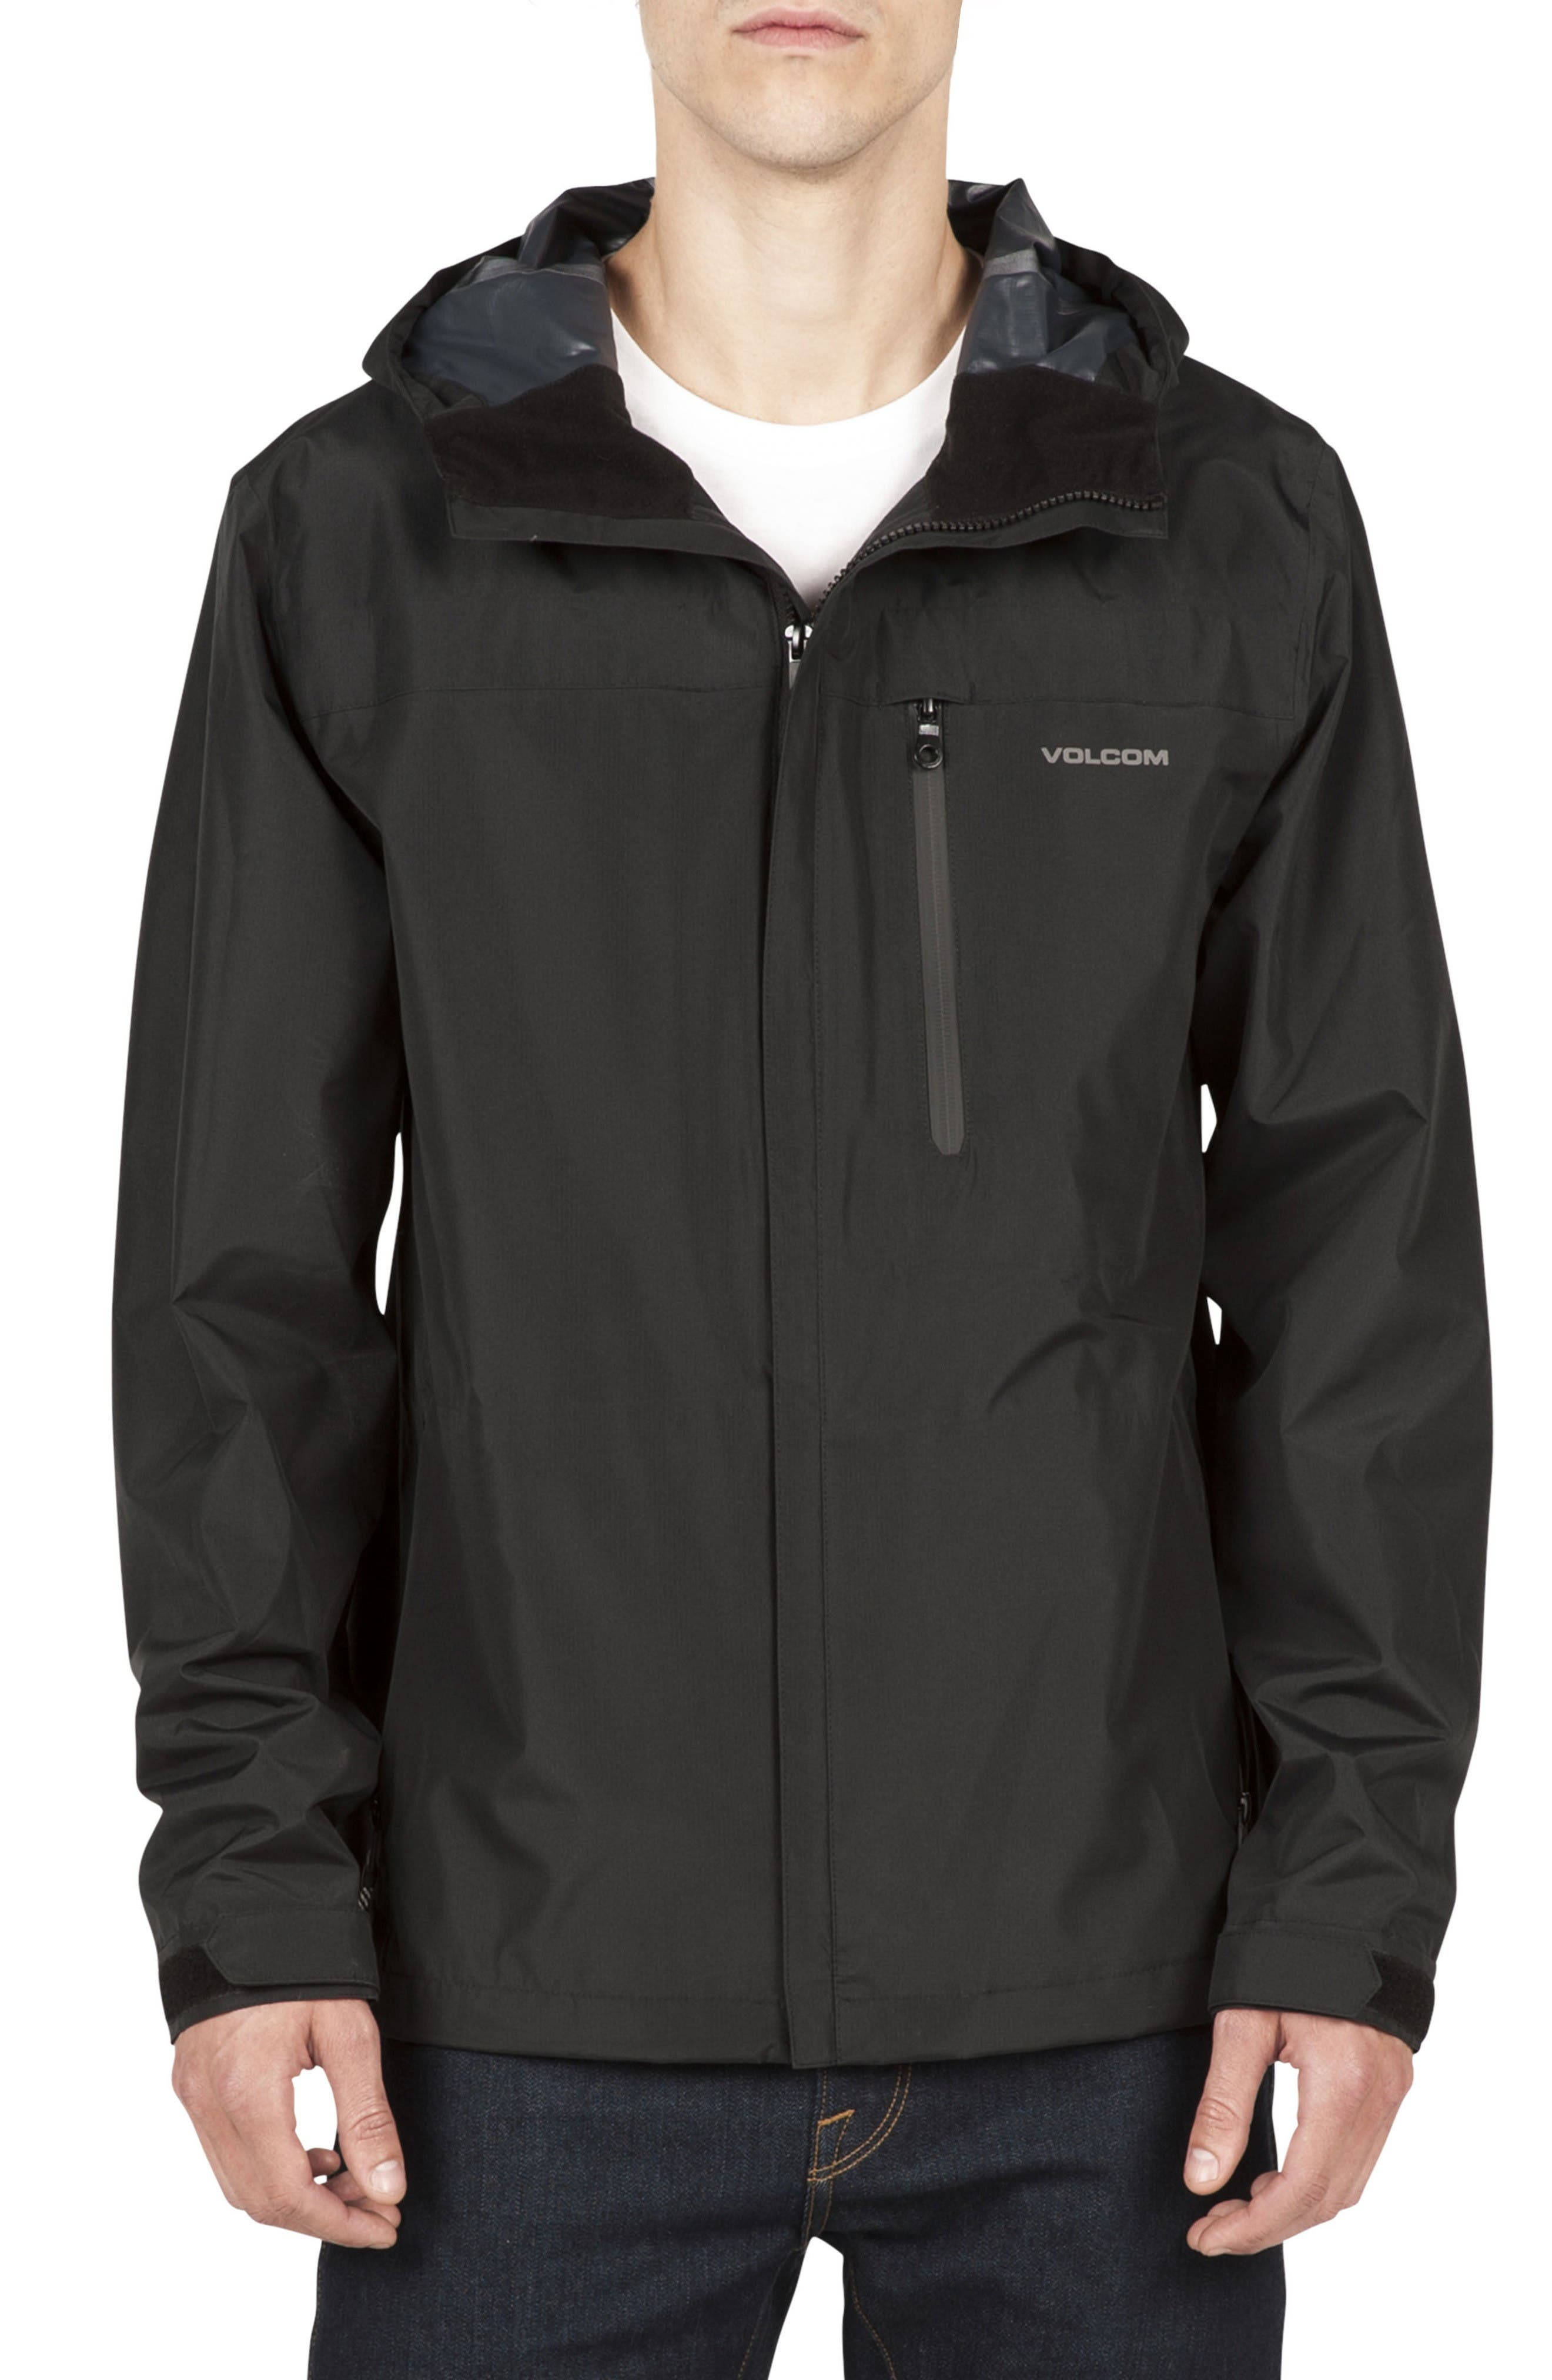 Water Resistant Zip Jacket,                             Main thumbnail 1, color,                             Black